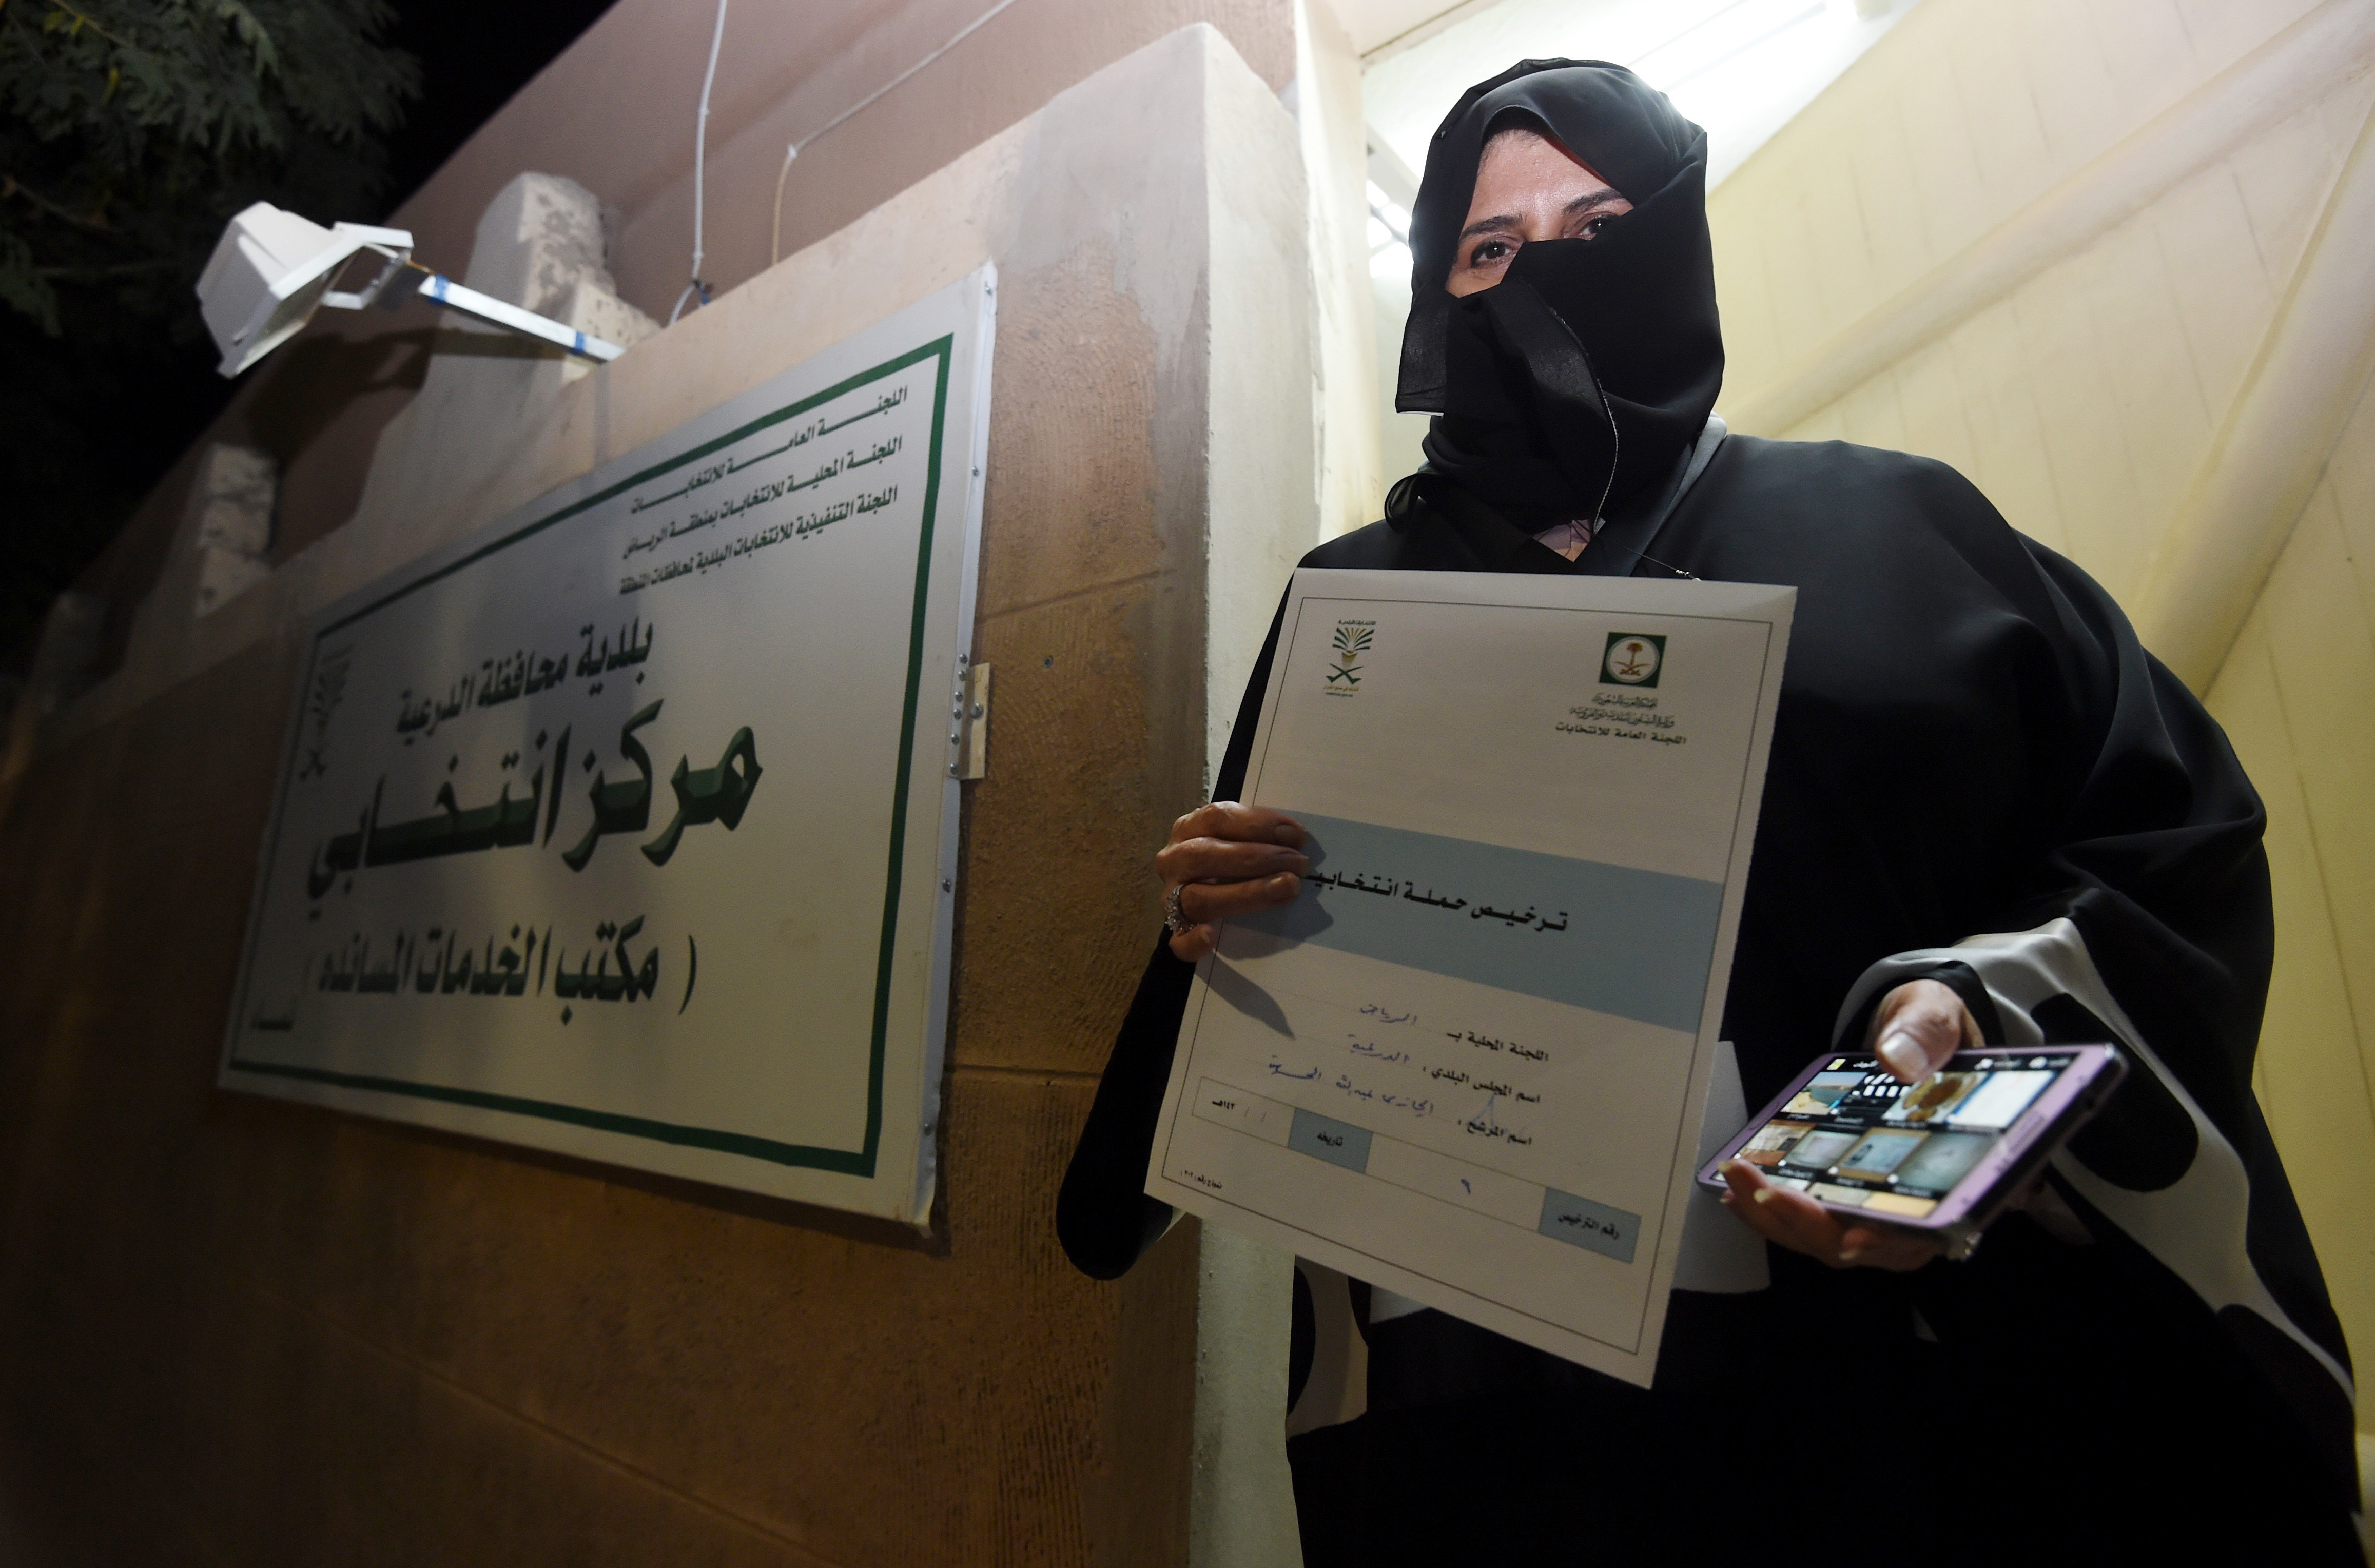 Aljazi al-Hussaini, a candidate for the municipal council in the town of Diriyah, on the outskirts of the Saudi capital Riyadh, shows an electoral campaign license issued by the central municipal elections committee on November 29, 2015.